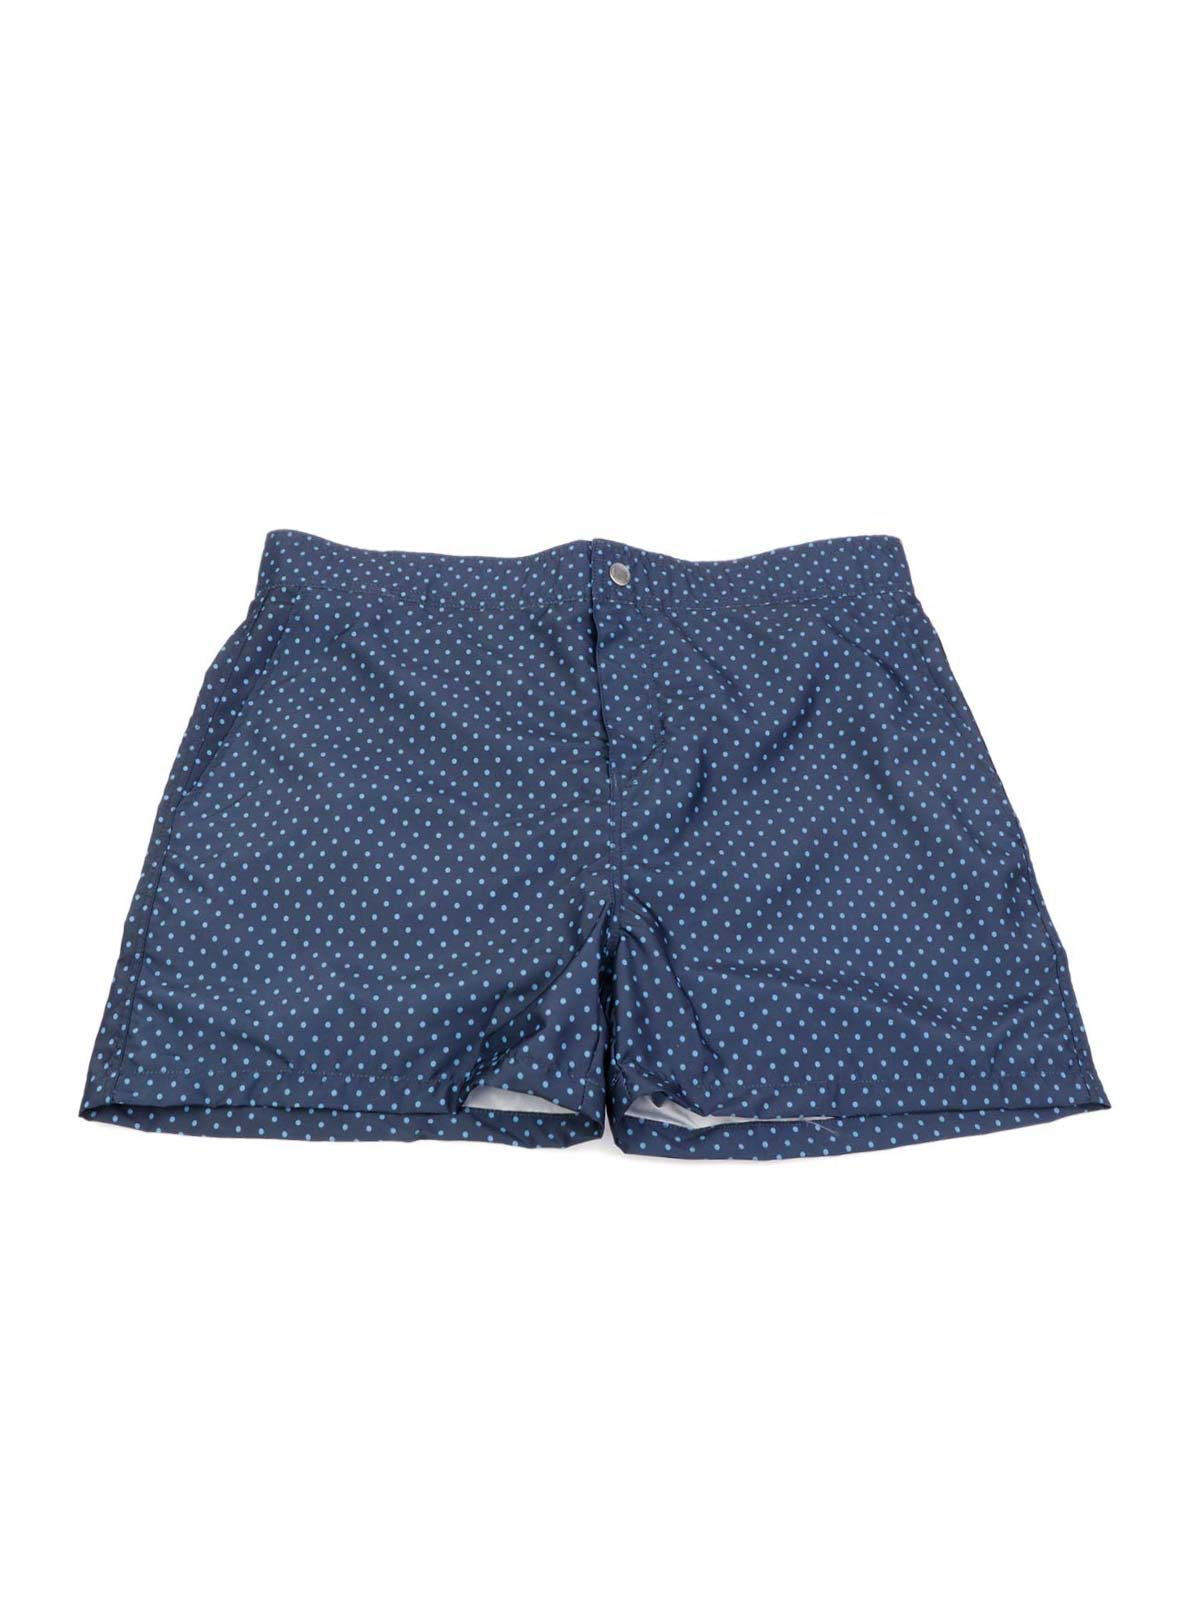 Picture of GANT | Men's Dot Swim Short